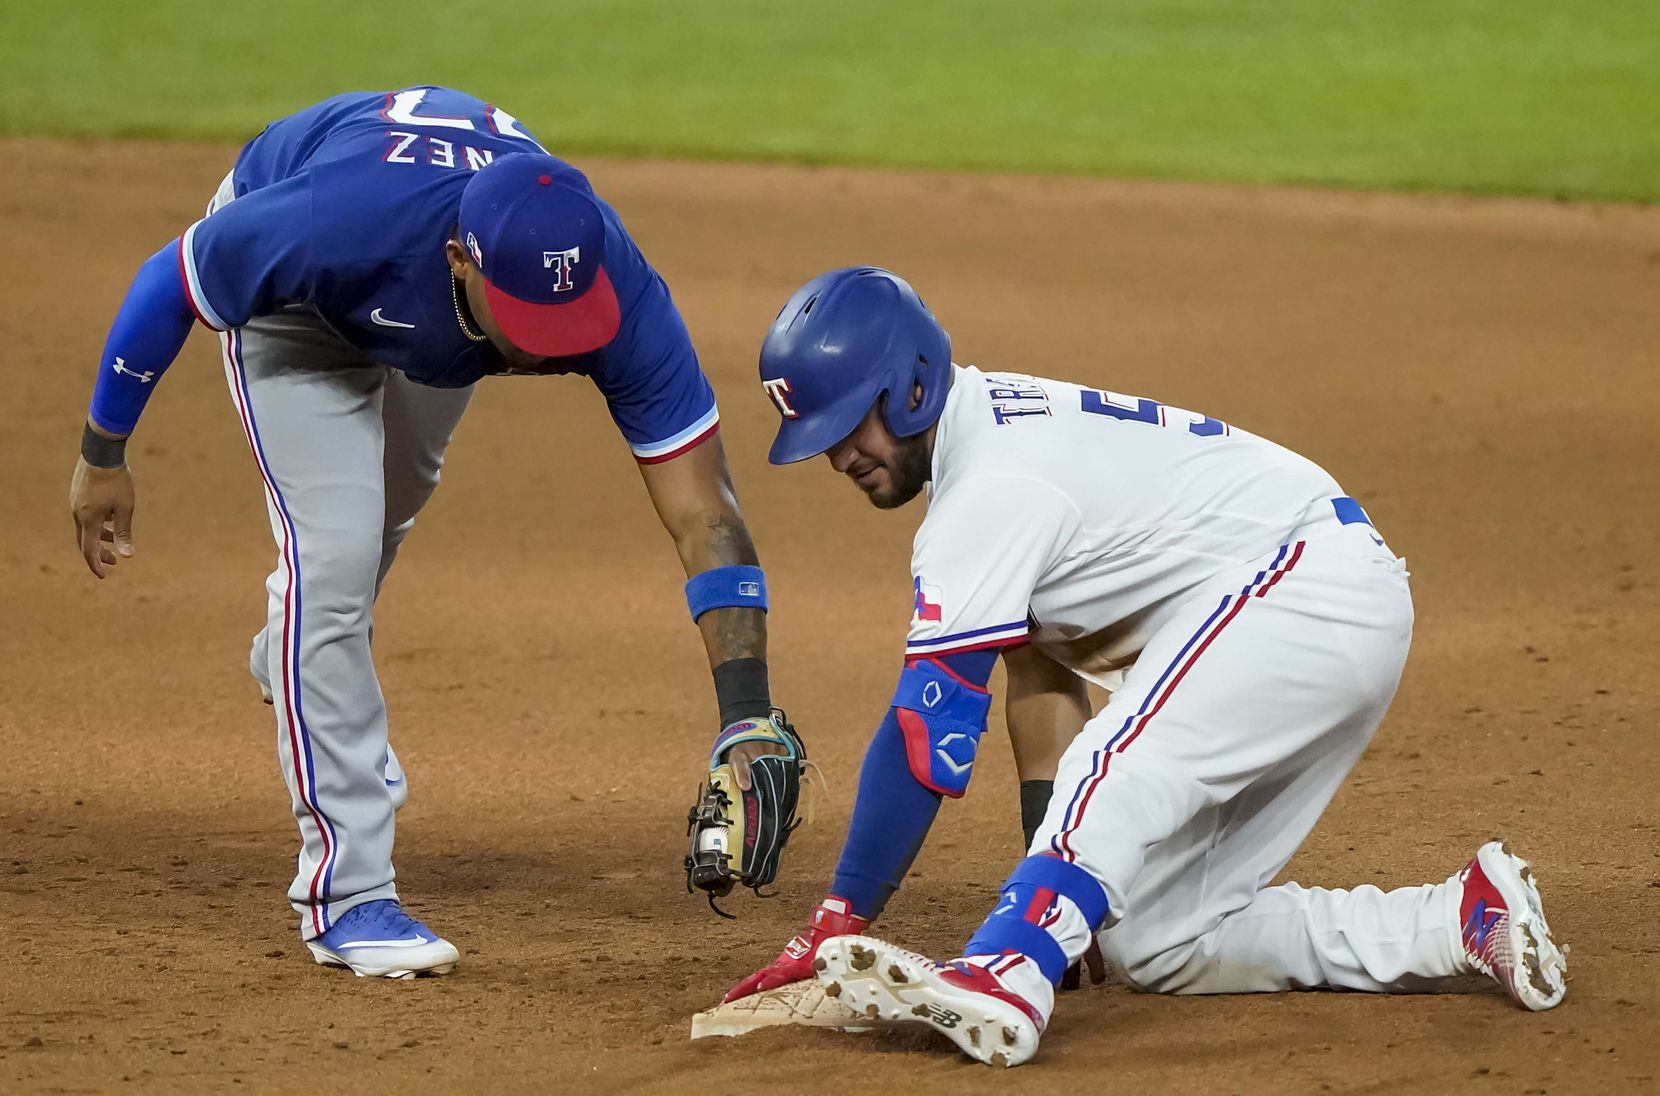 Catcher Jose Trevino is safe at second base with a double ahead of the tag from infielder Andy Ibanez in an intrasquad game during Texas Rangers Summer Camp at Globe Life Field on Saturday, July 18, 2020.